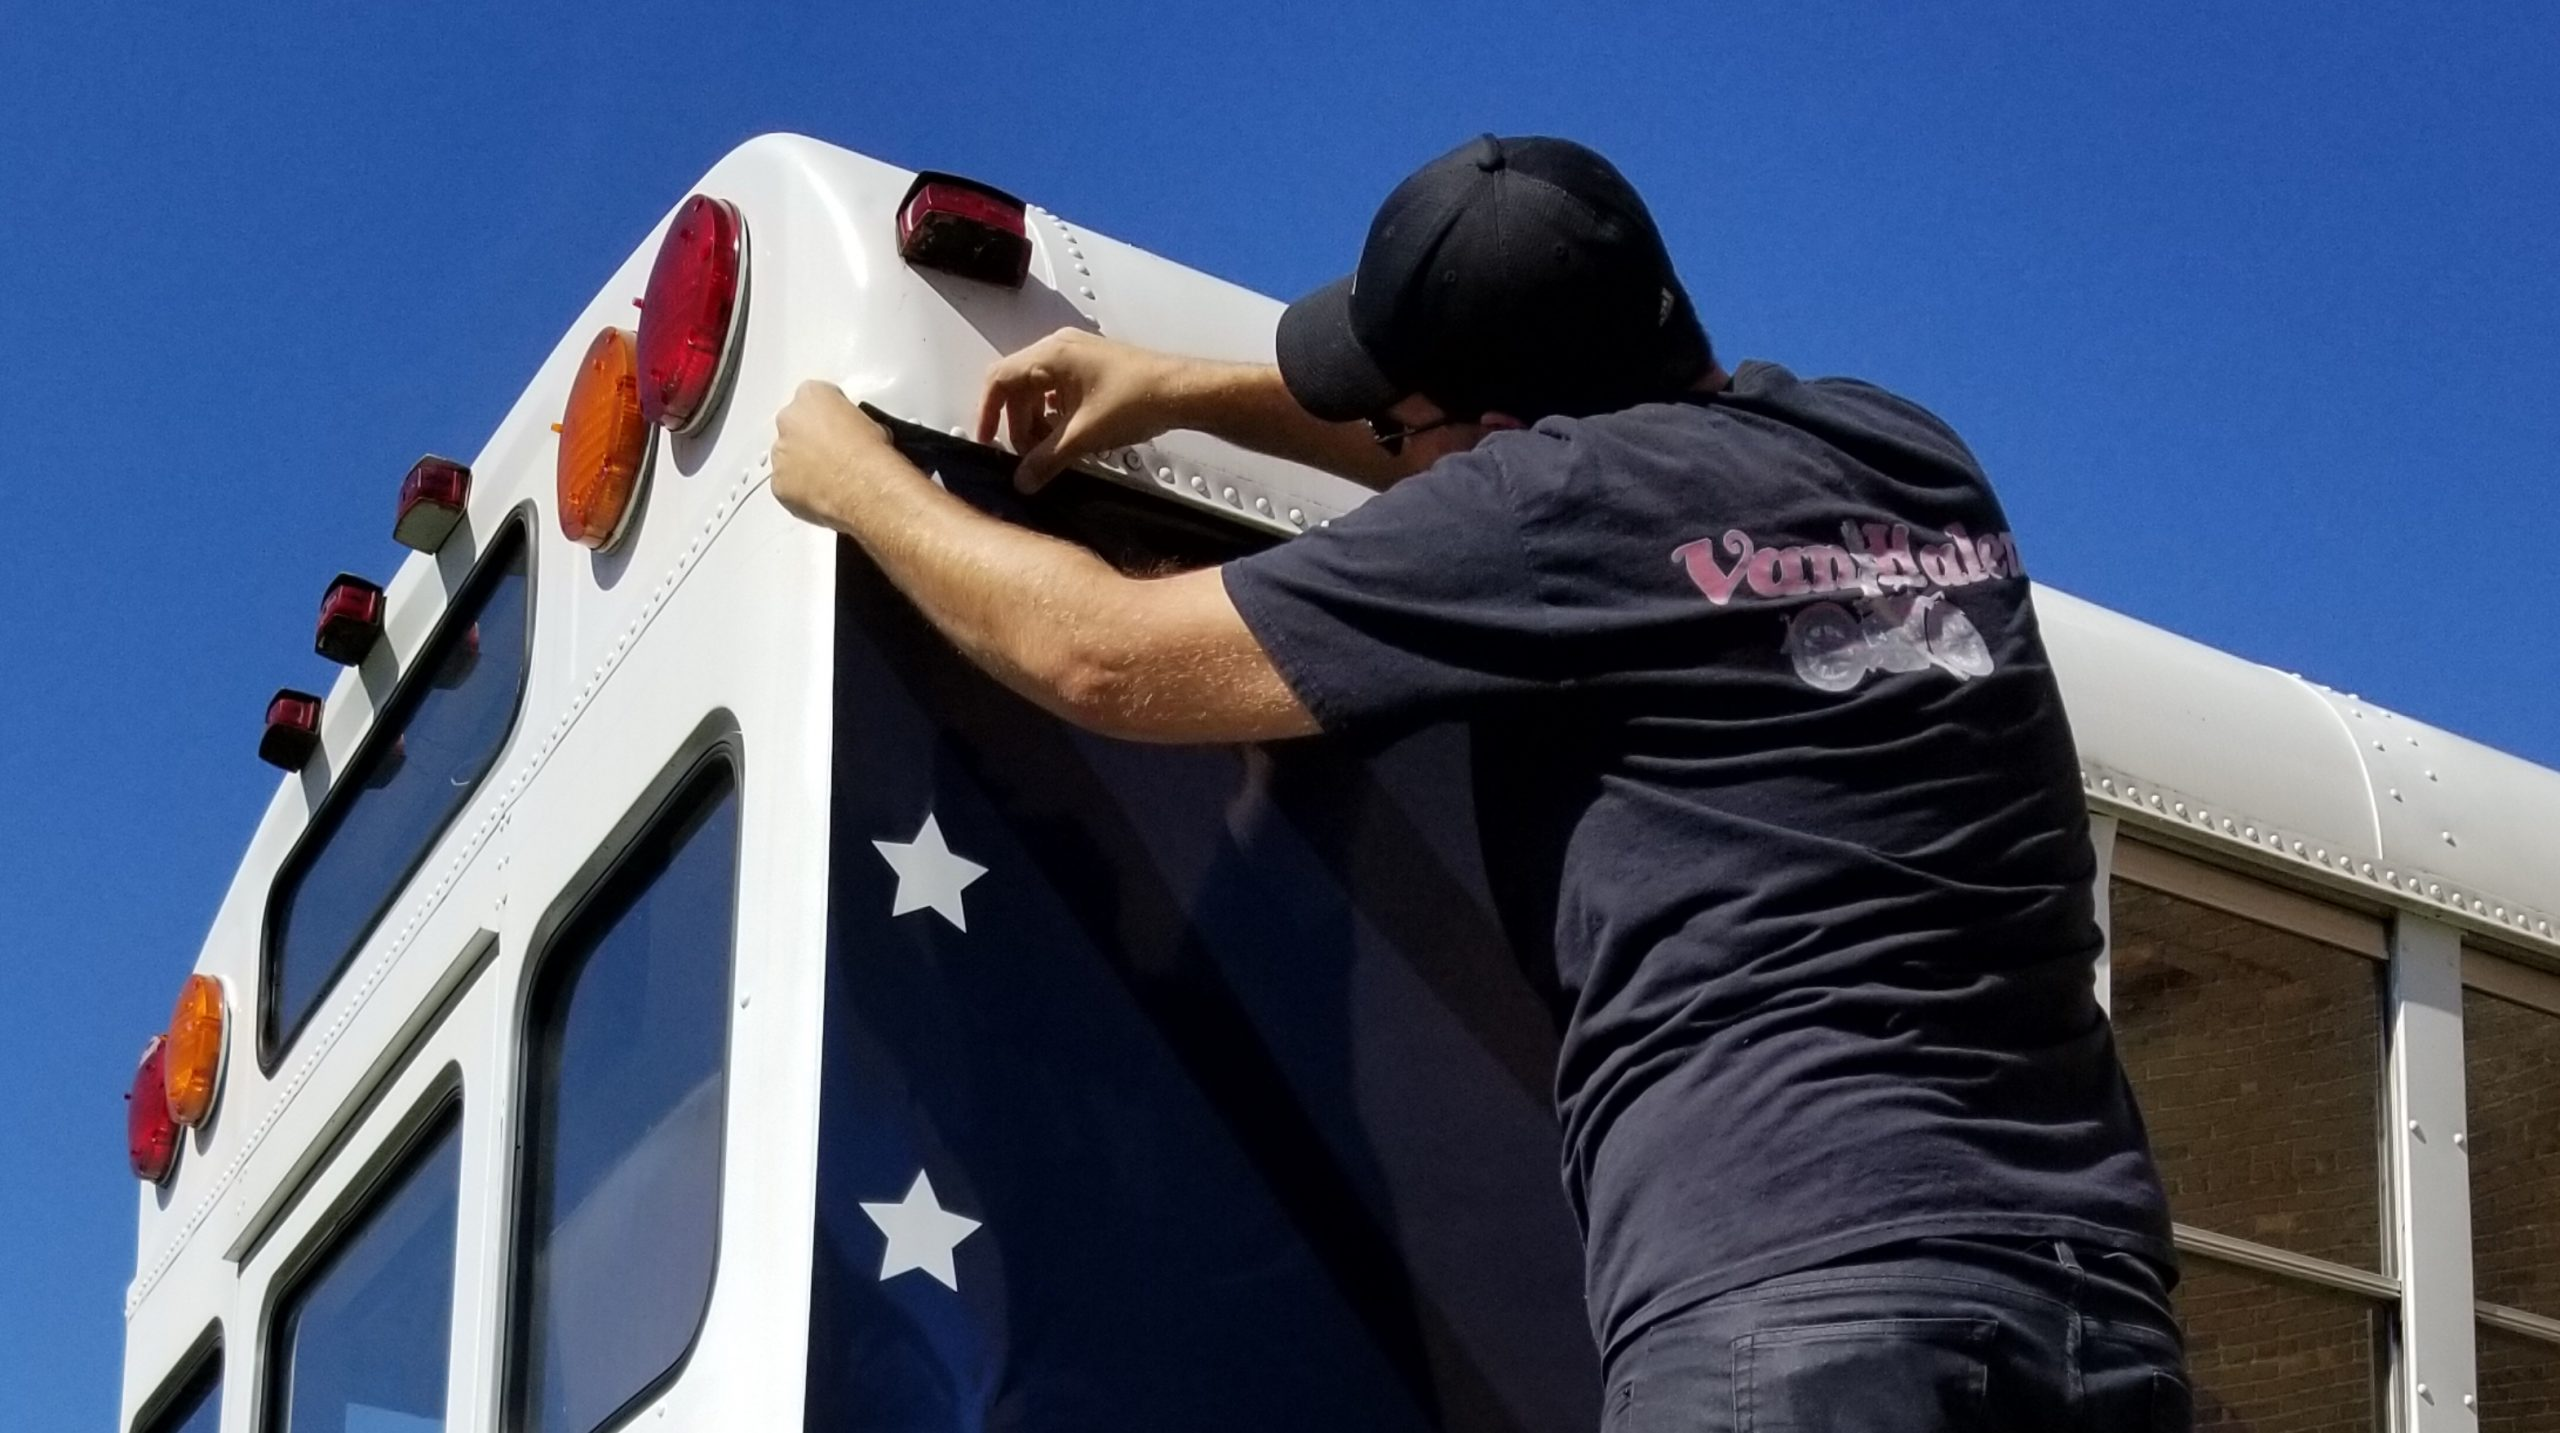 Peacemakers International - Bus Tail Wrap - 05